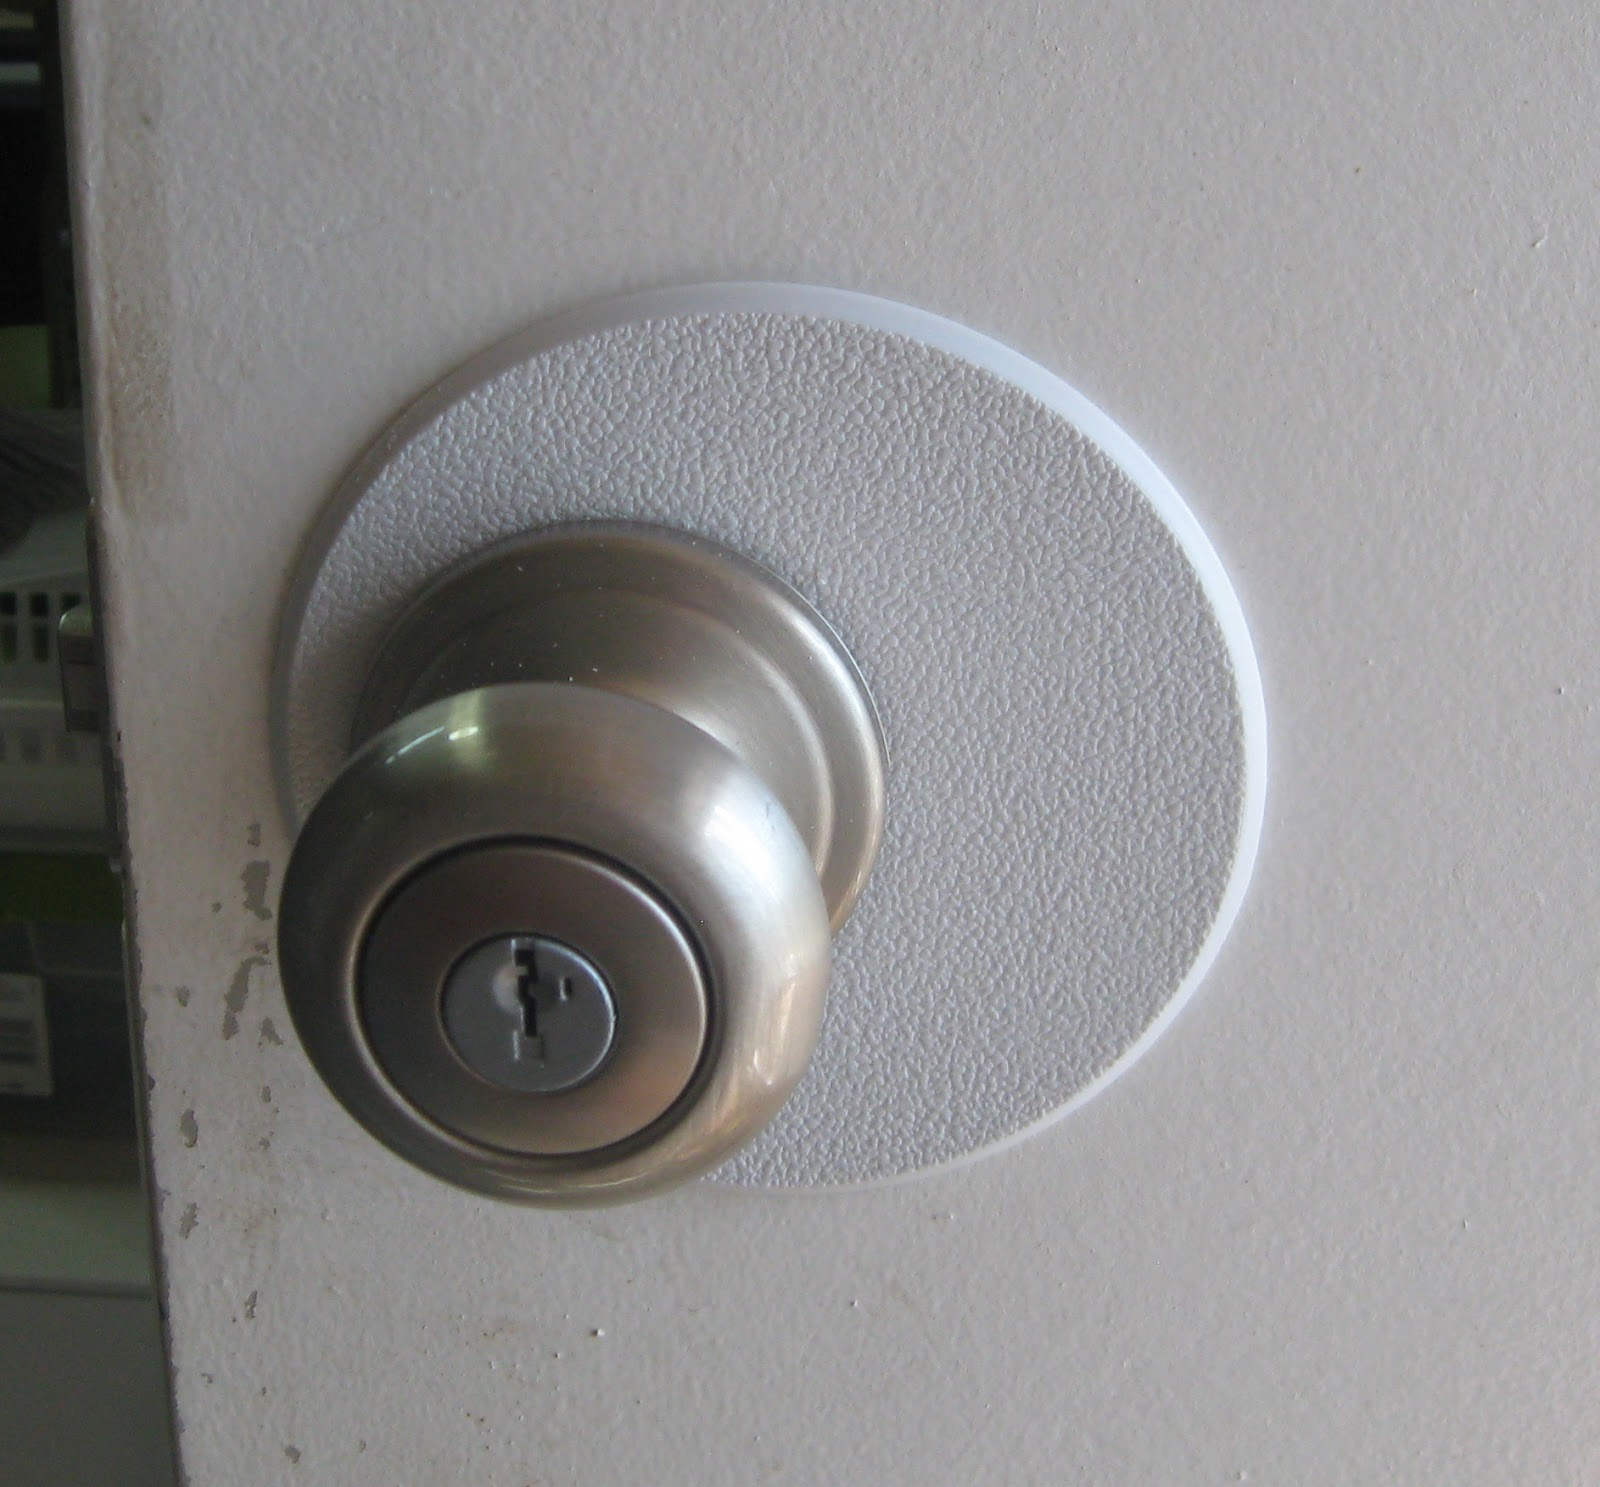 new door knobs photo - 5